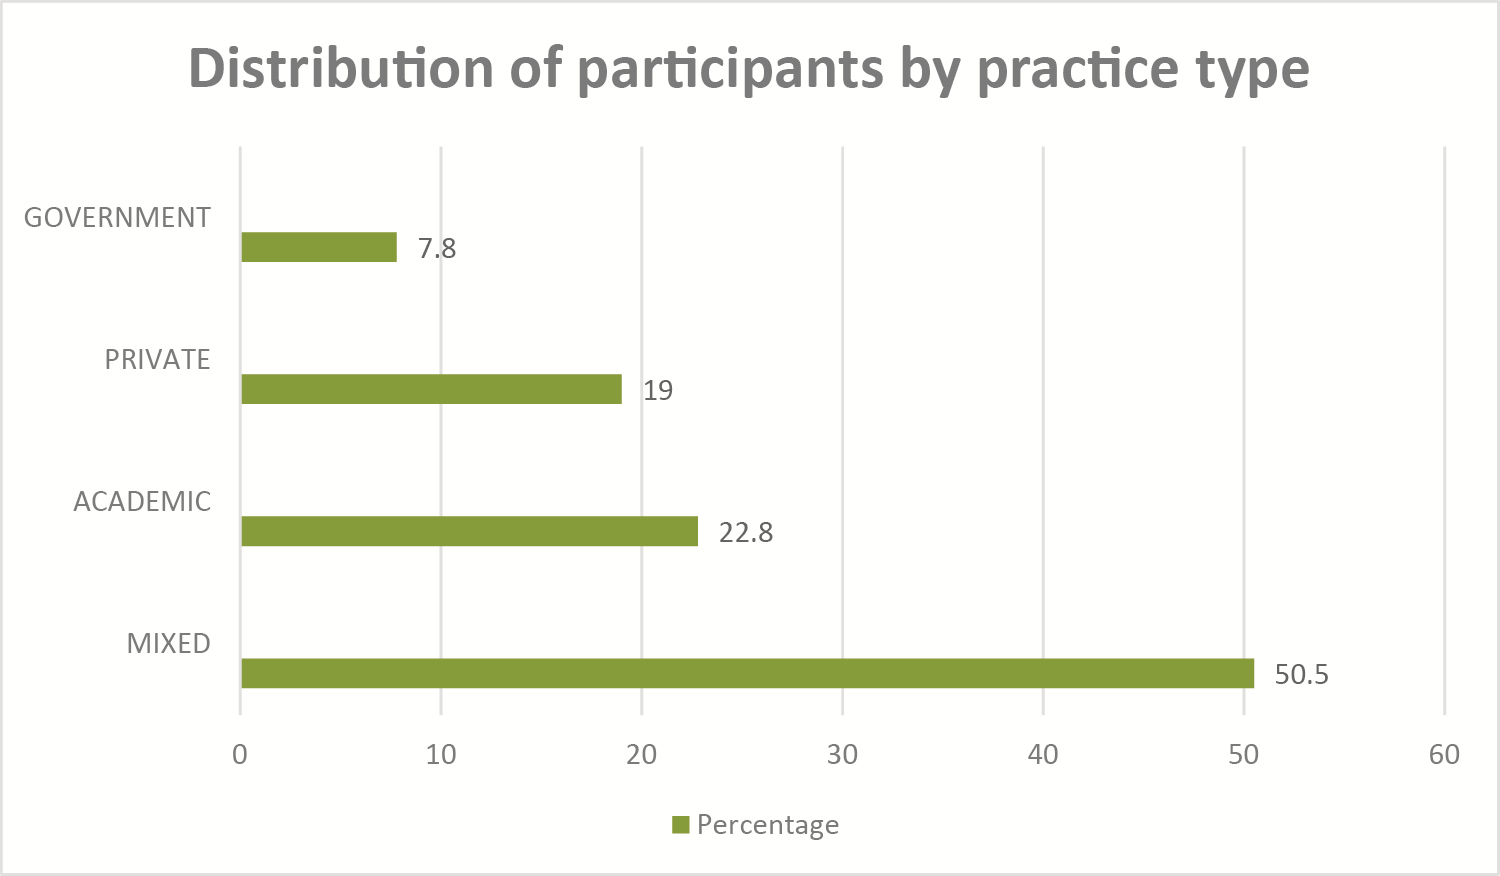 Figure 3: Distribution of participants by practice type